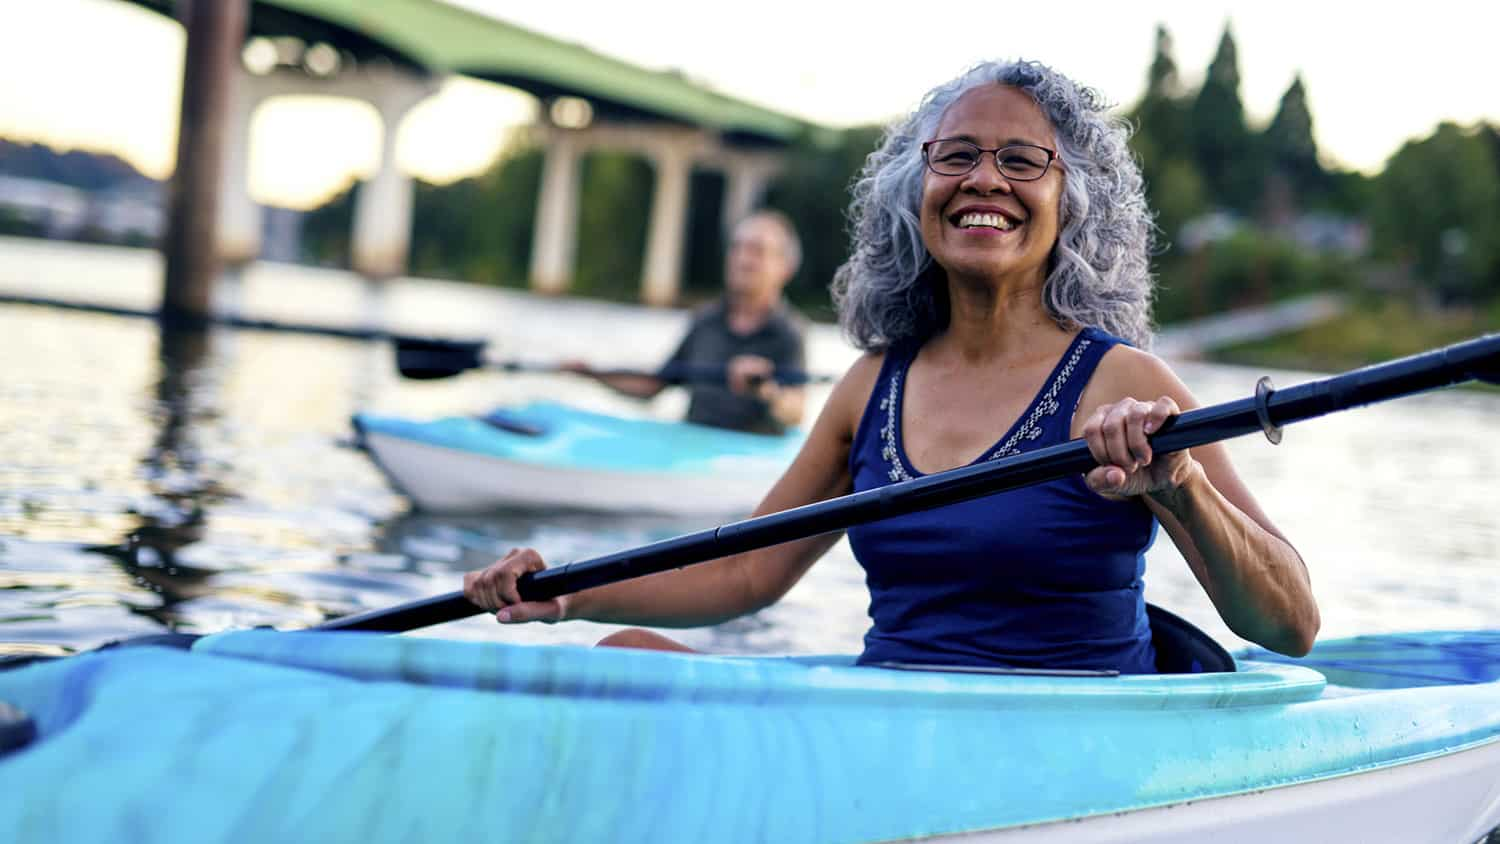 Things-You-Can-Do-in-Retirement